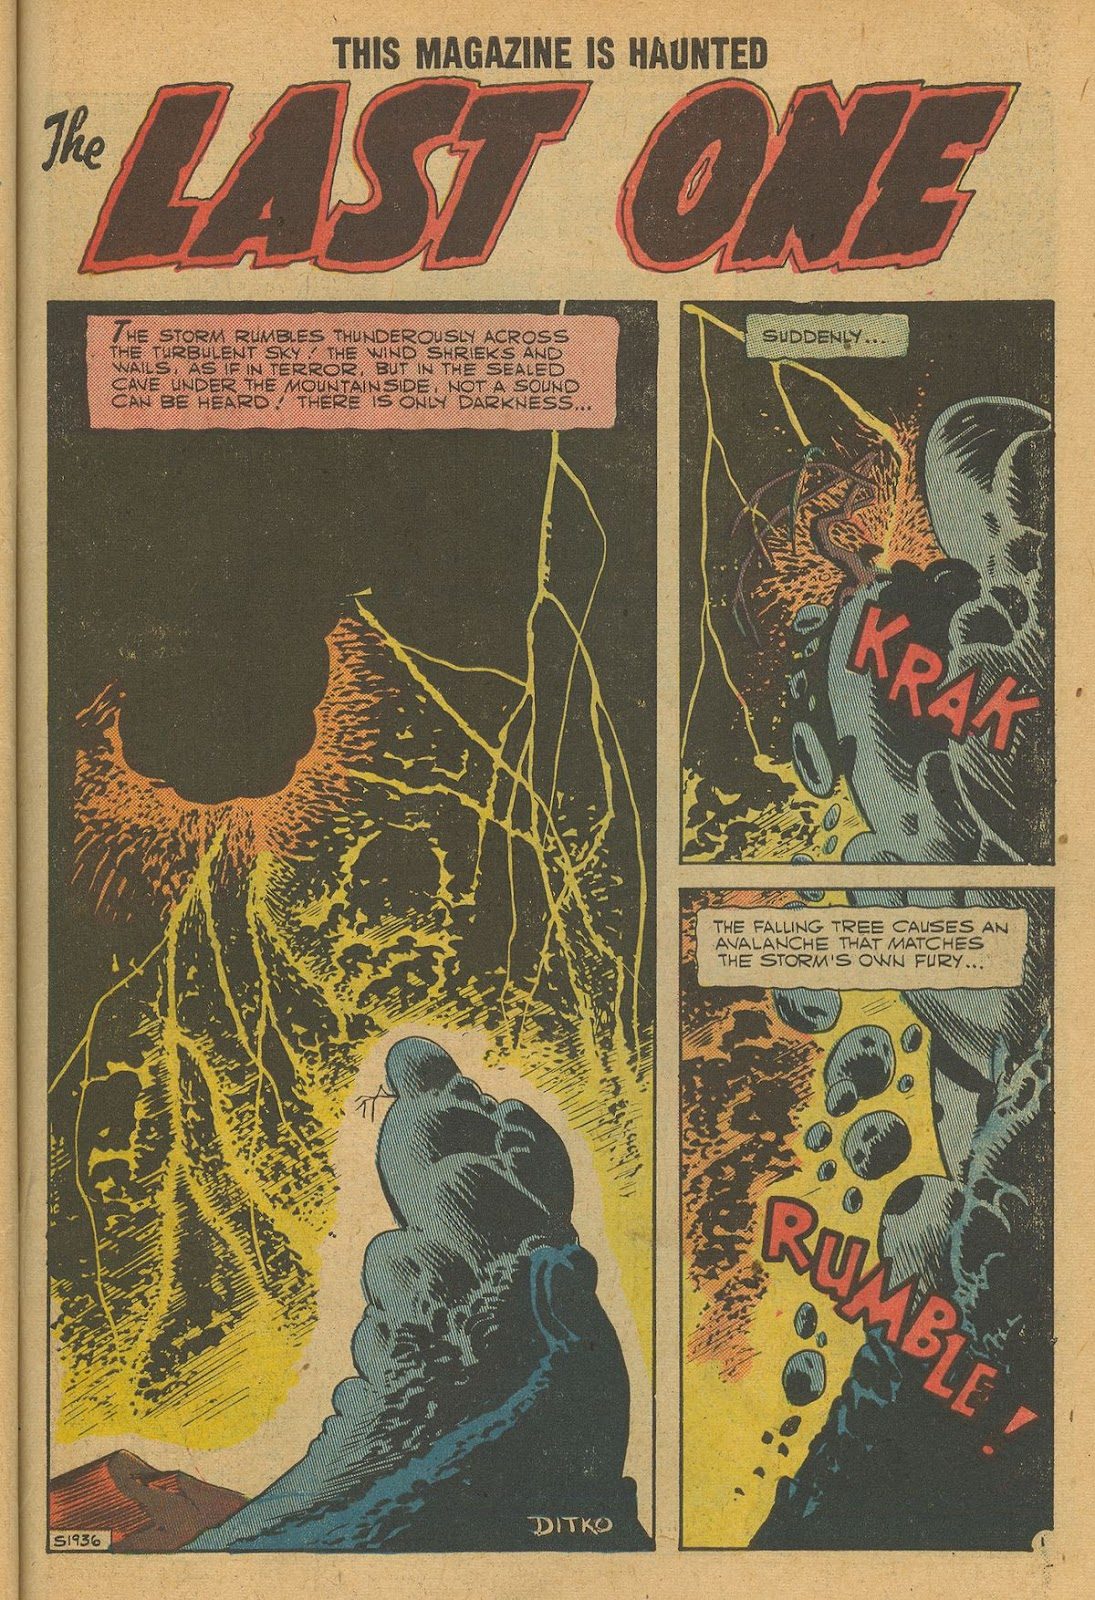 Read online This Magazine Is Haunted comic -  Issue #12 - 27